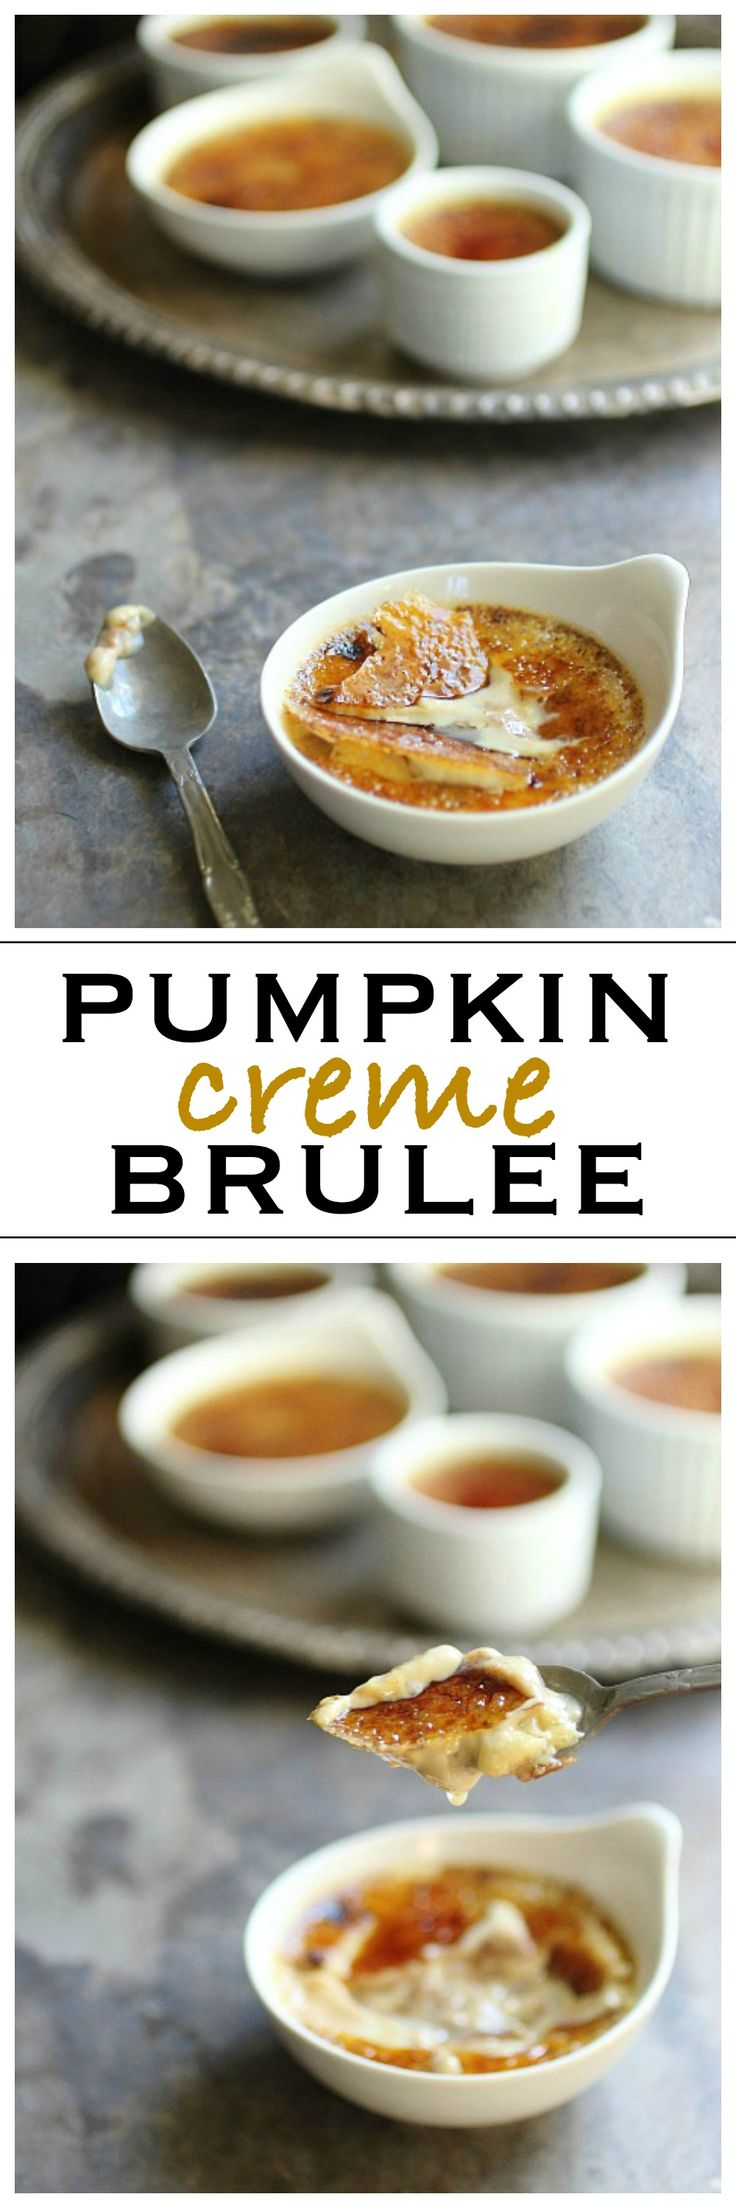 Creamy Pumpkin Creme Brulee with A Crunchy Sugar Top | Foodness Gracious